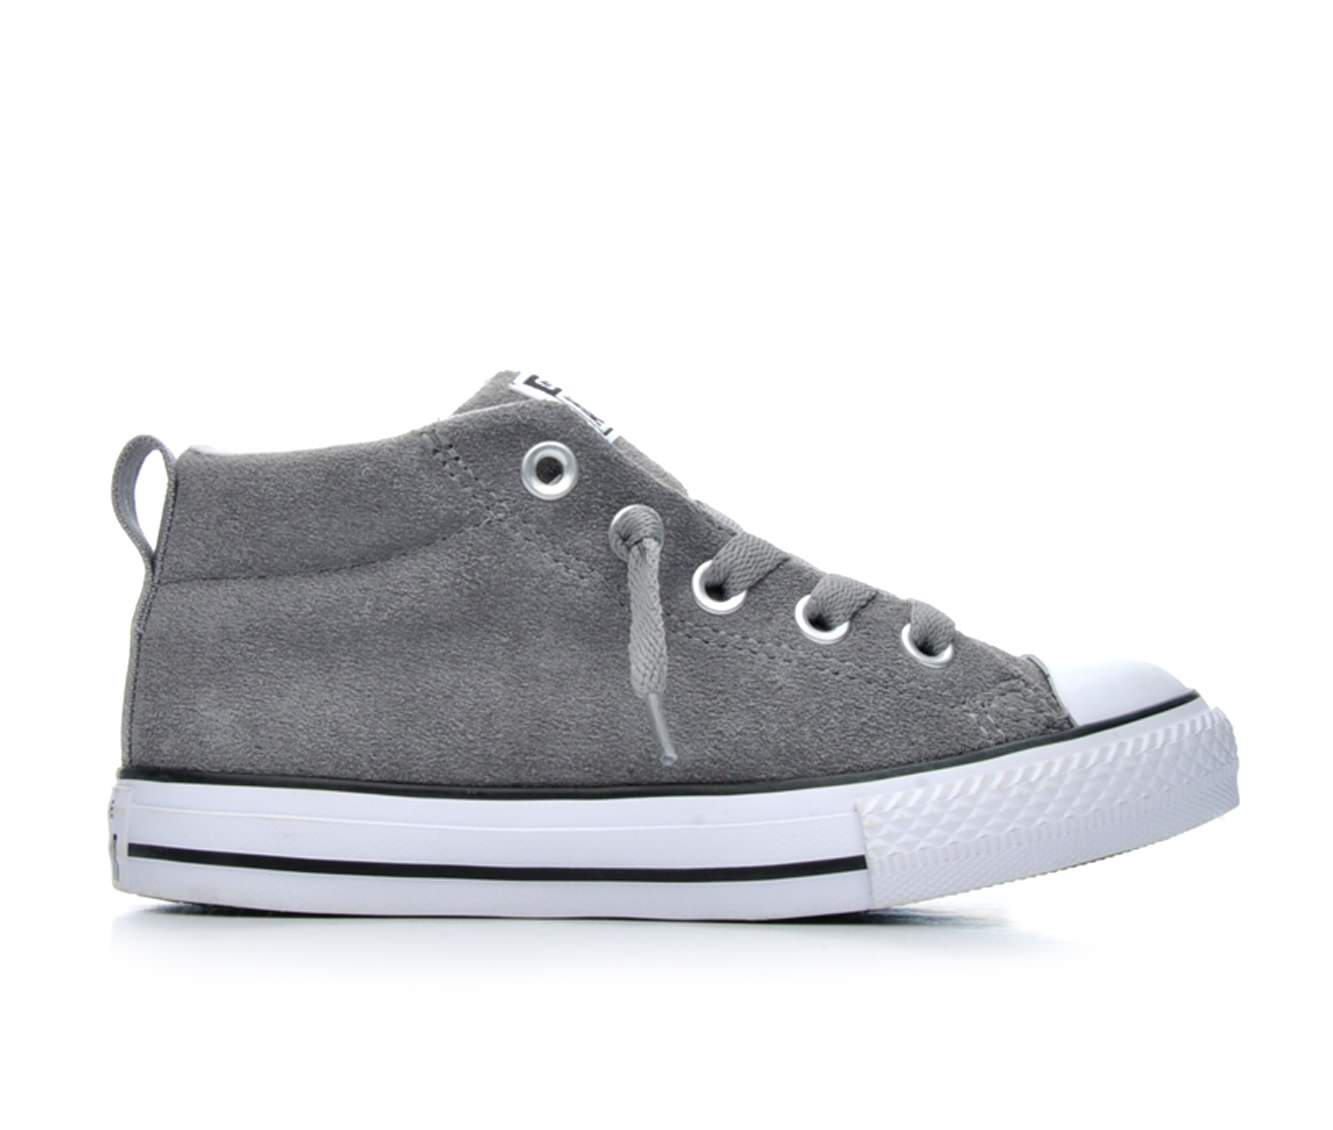 Boys' Converse Chuck Taylor All Star Street Mid Oxford Shoes (Grey)